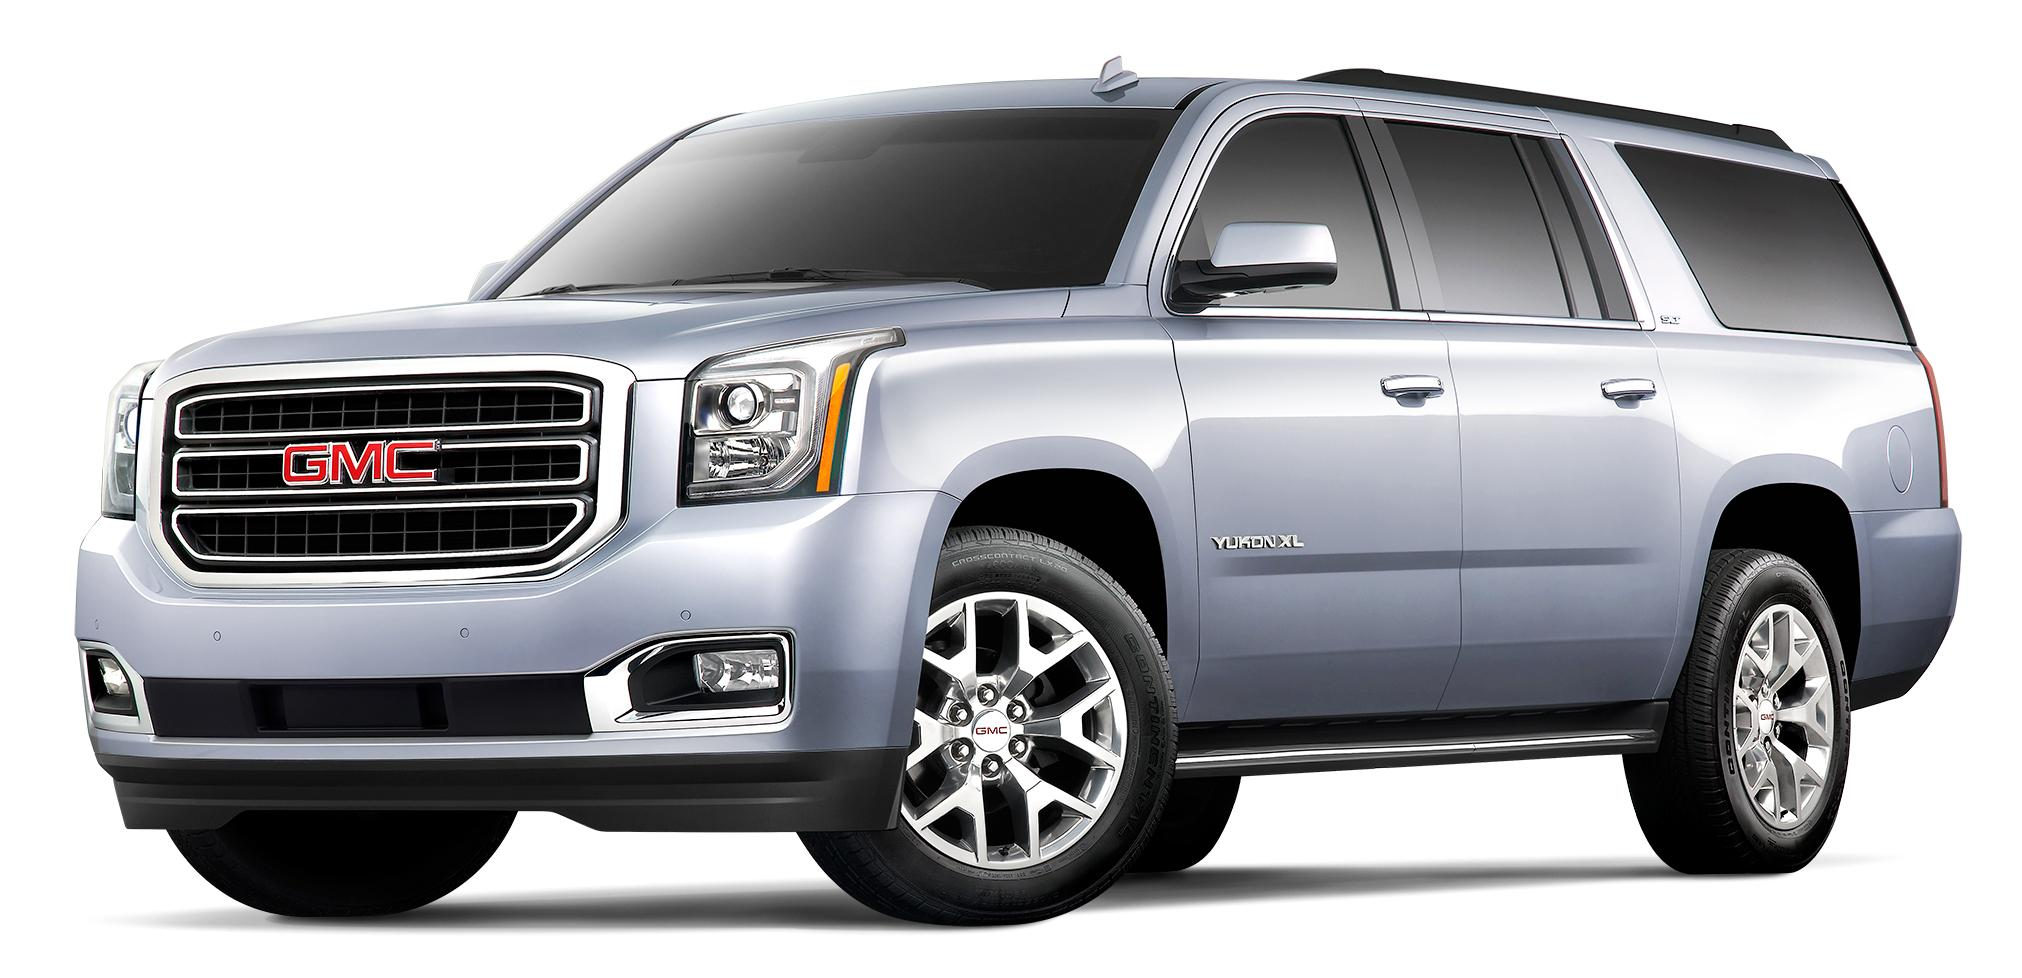 GMC Yukon XL Grey